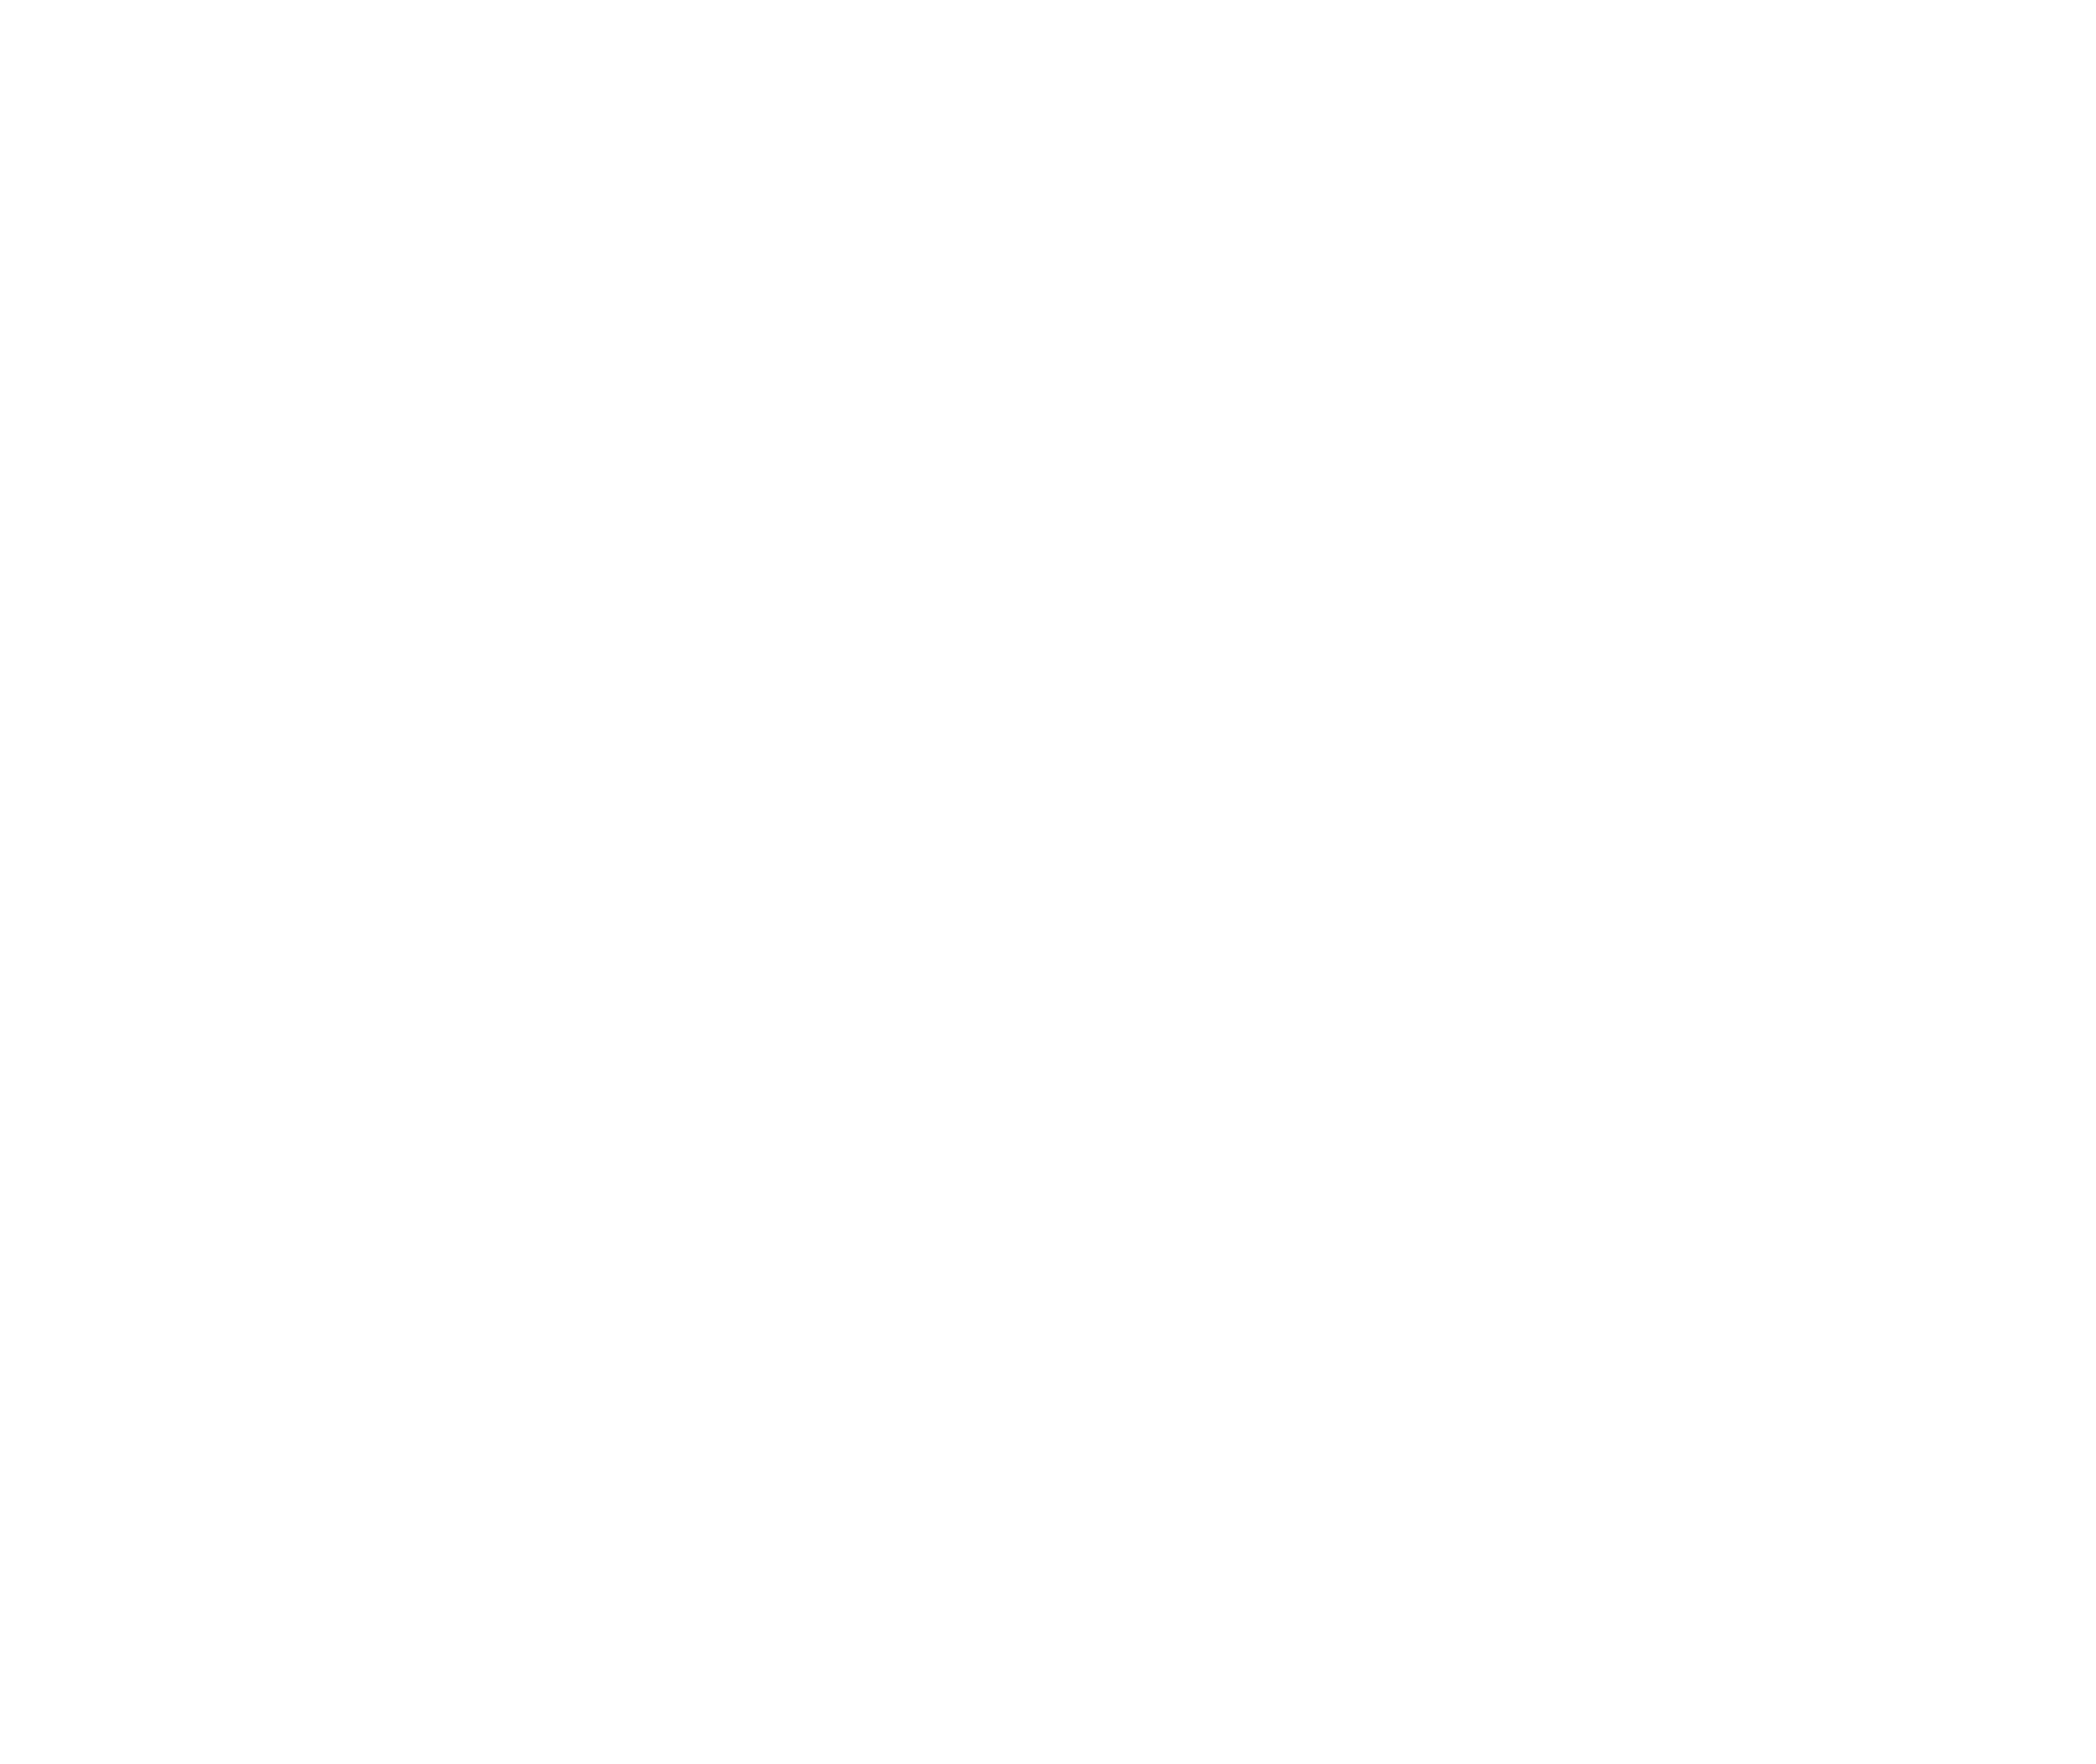 Mental Health And Wellness Center In Jackson Tn Imind Mental Health And Wellness Llc